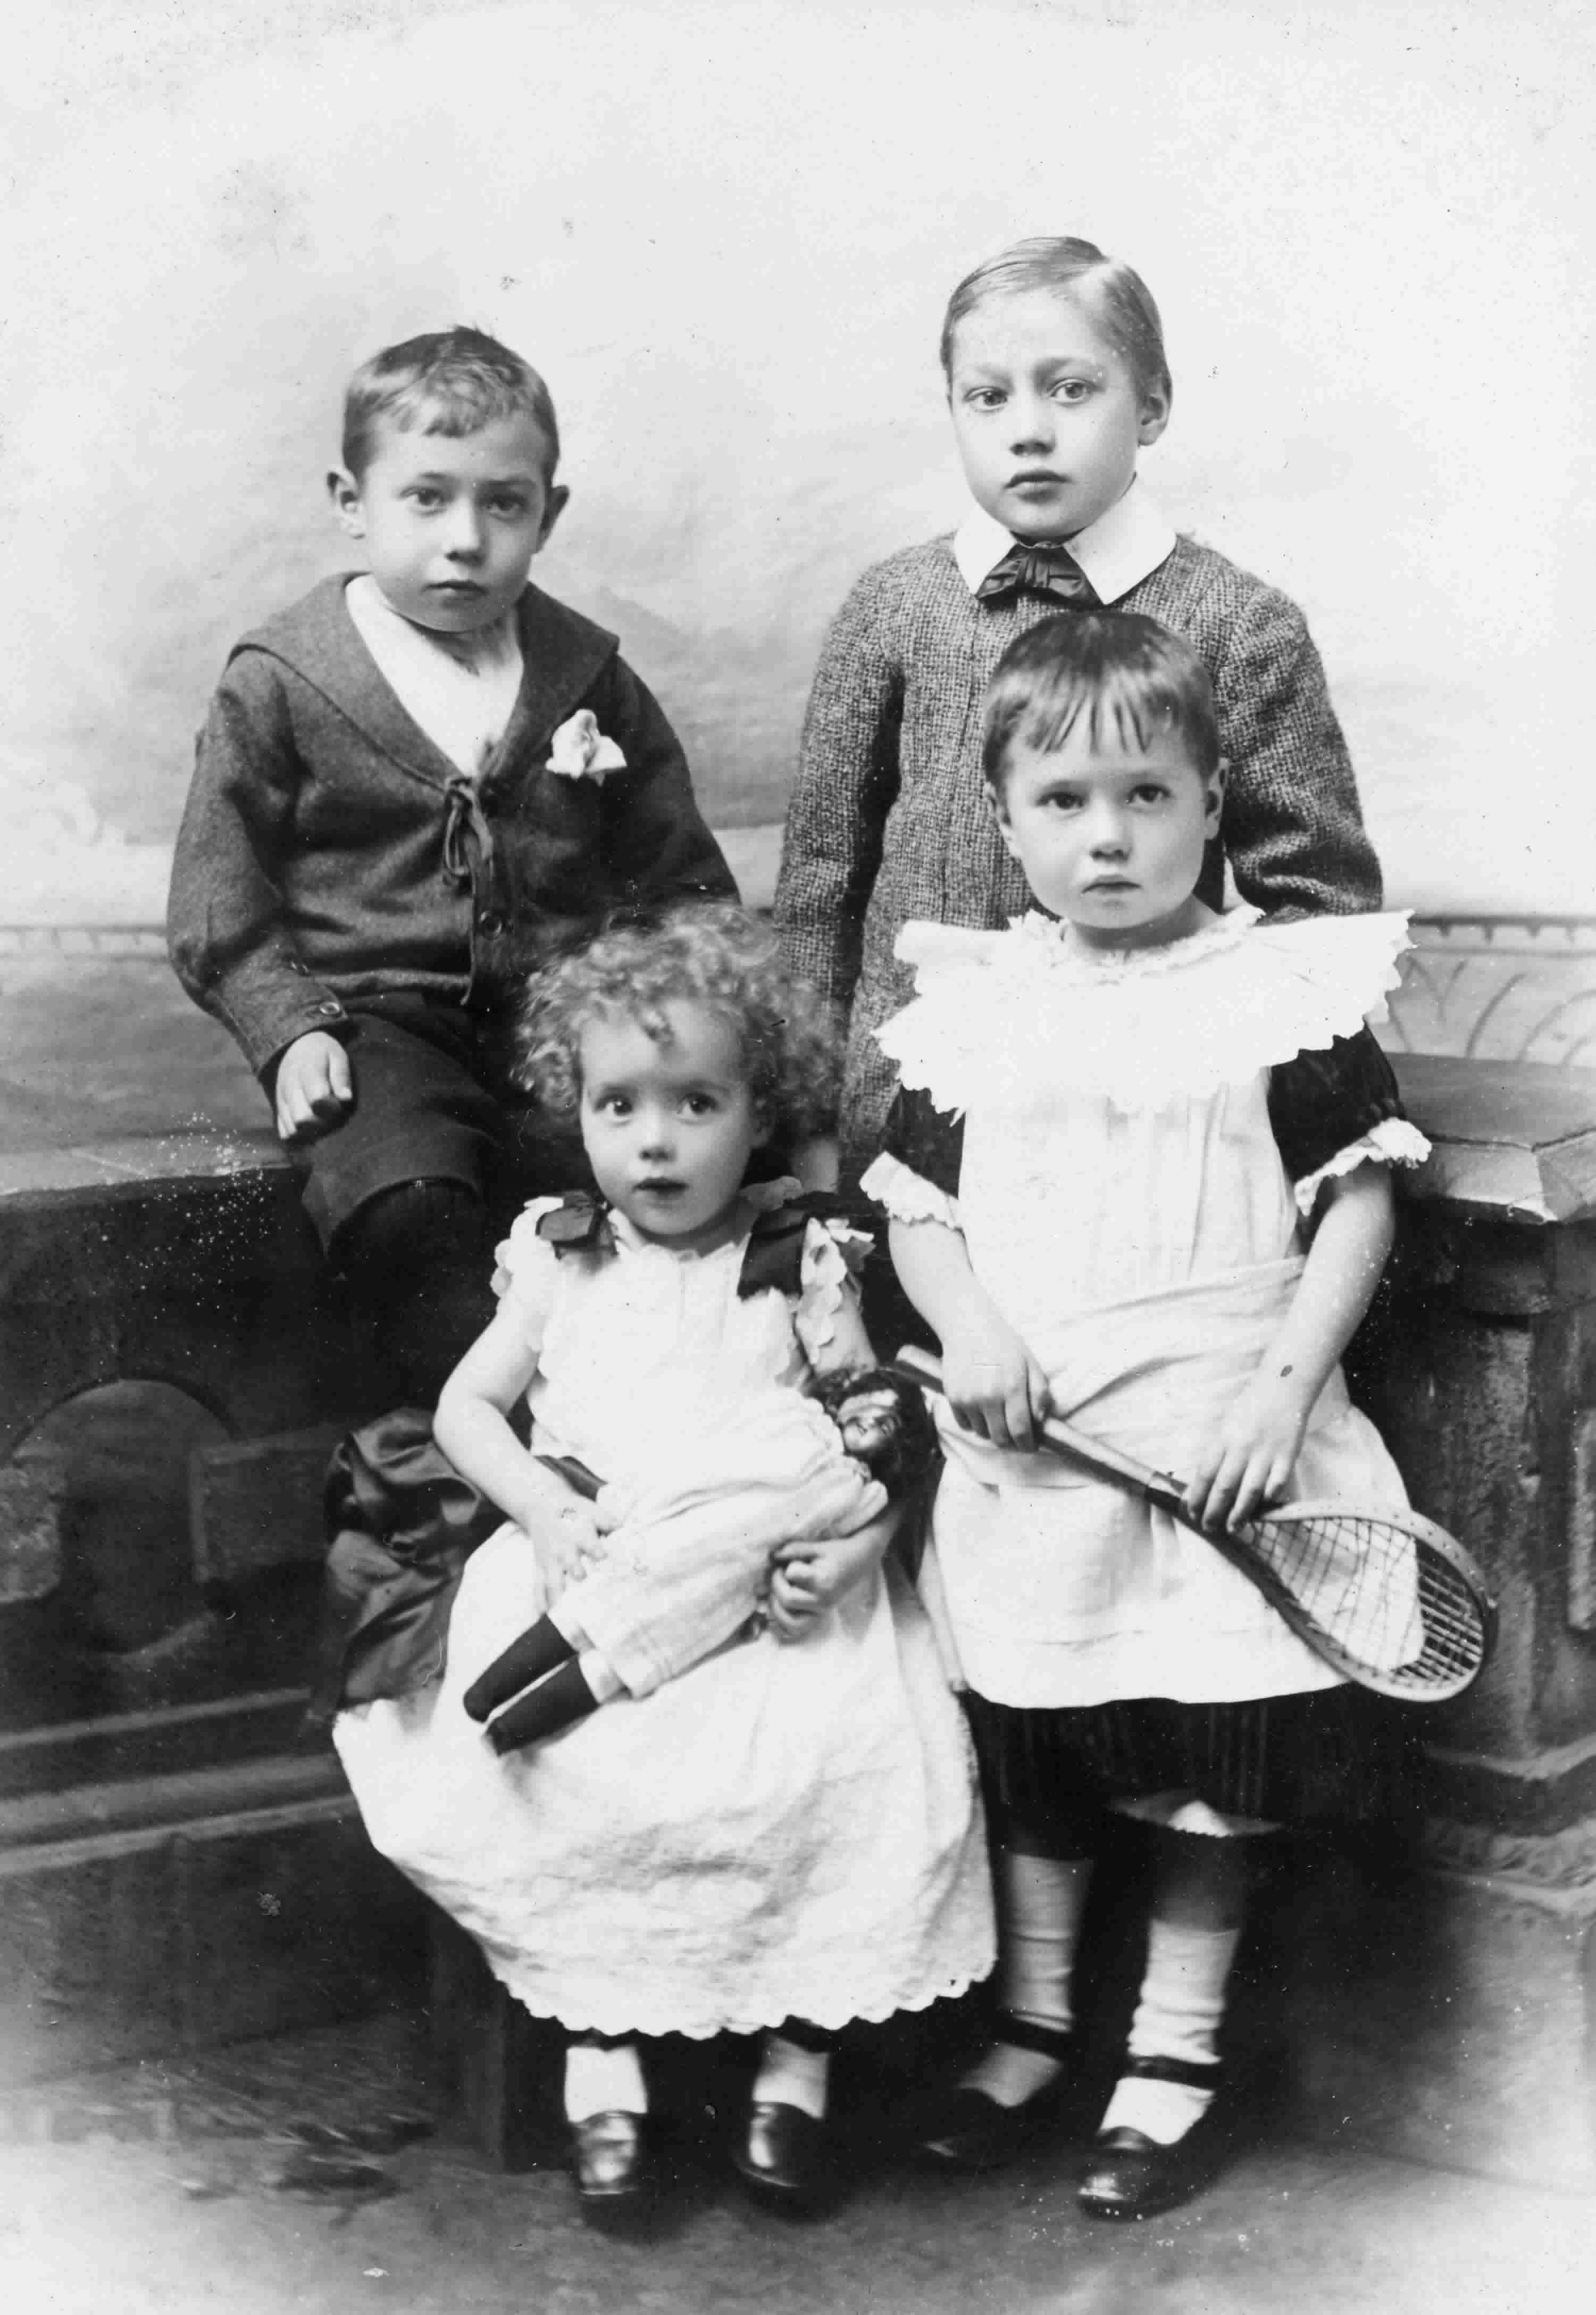 victorian children The life of the victorian child fell somewhere between dutiful children and loving parents to rigid patriarchal control filled with class and gender restrictions.